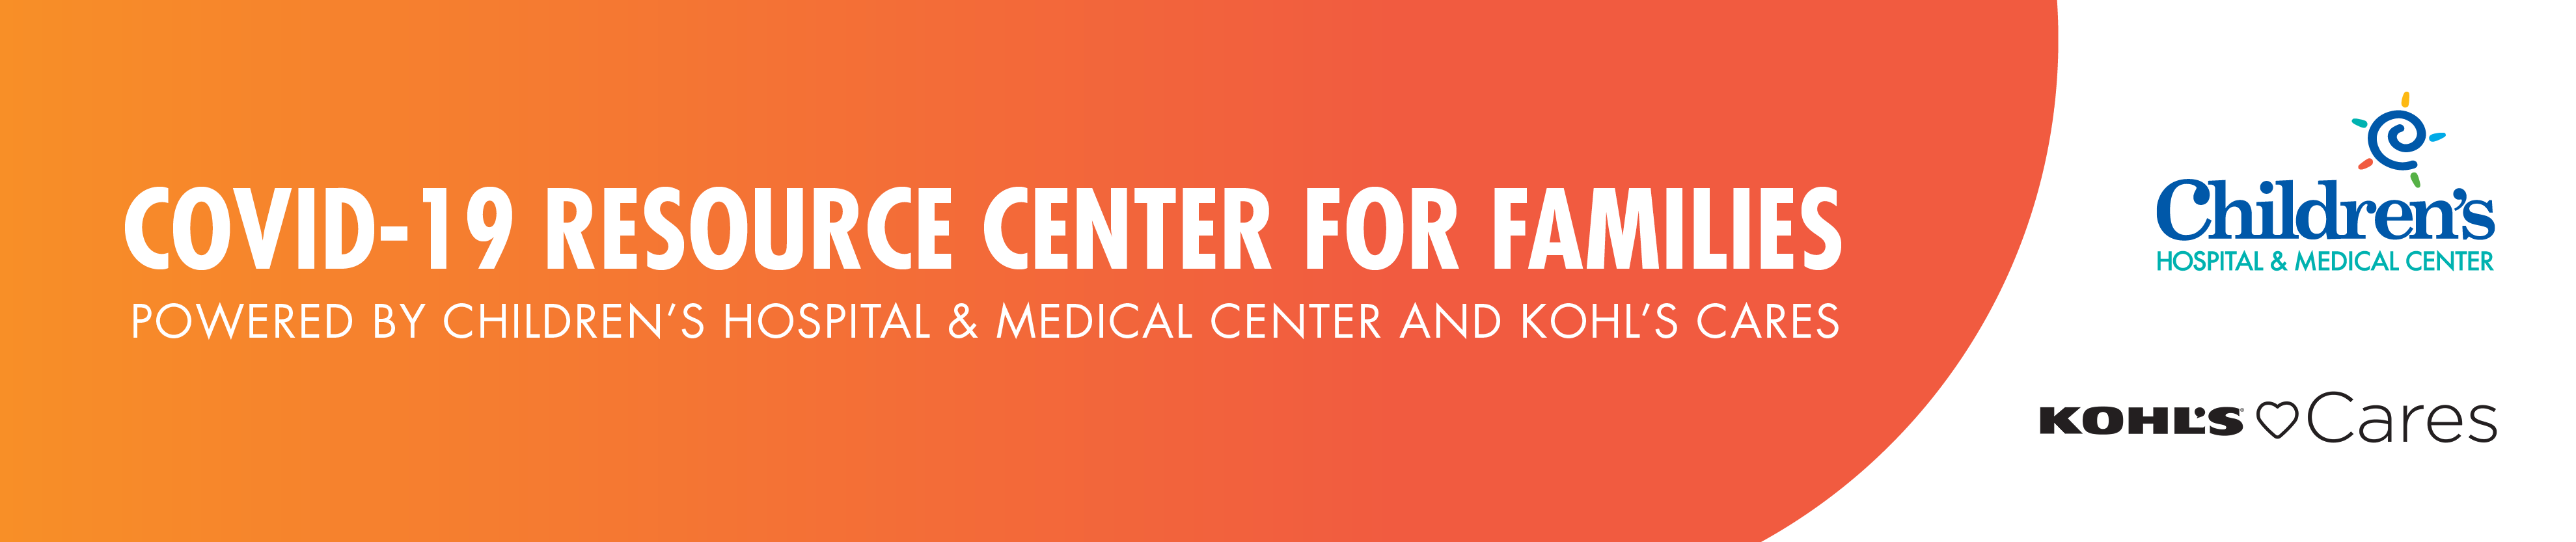 banner showing covid resource center for families powered by childrens and kohls cares